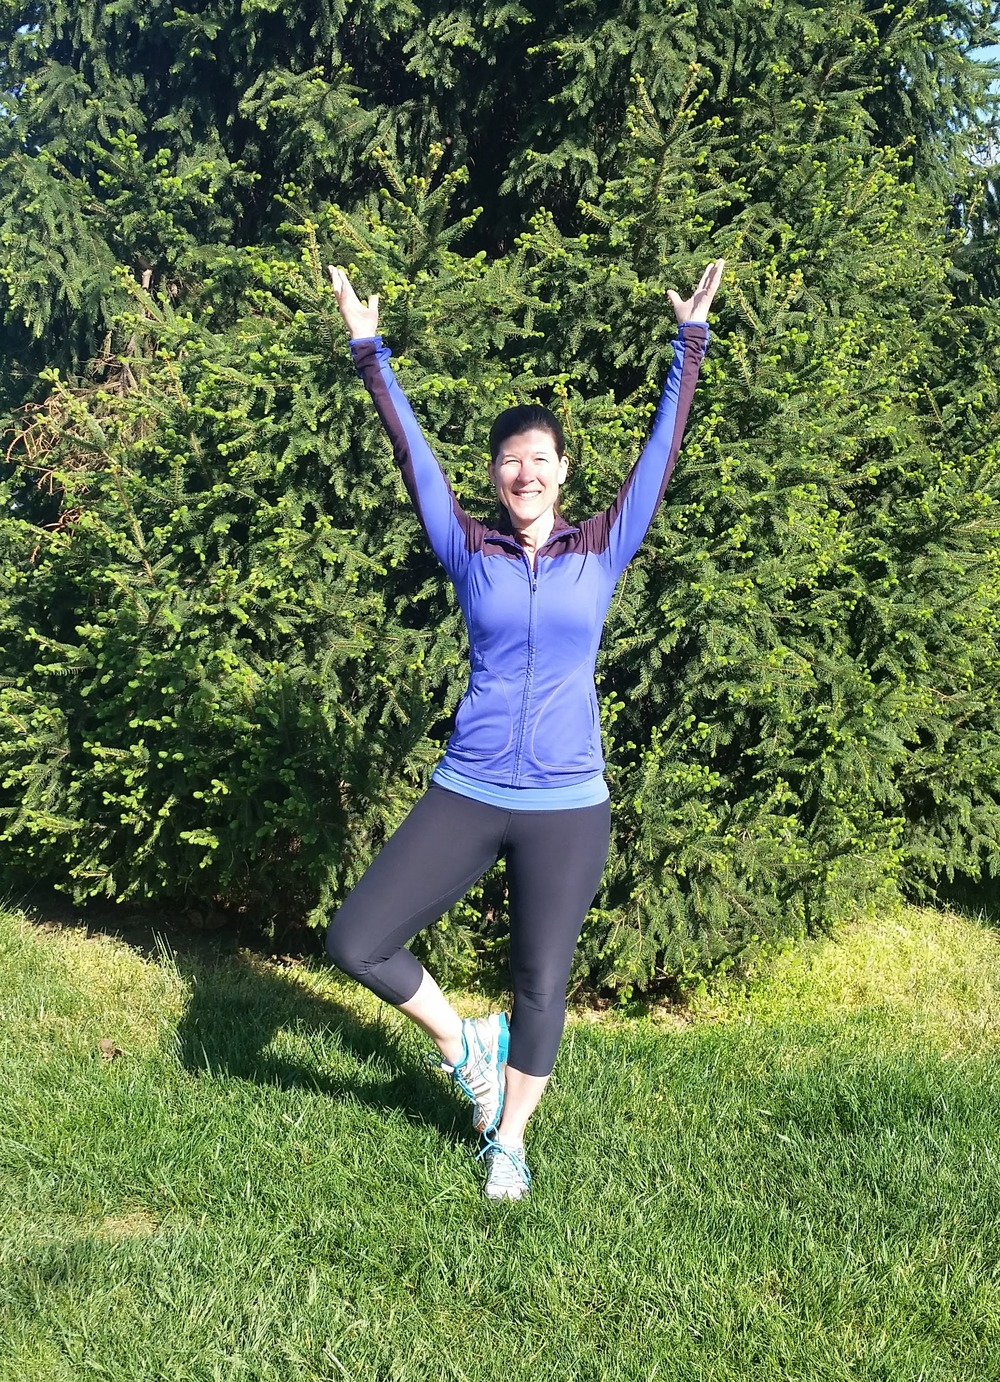 Tree pose with foot against calf